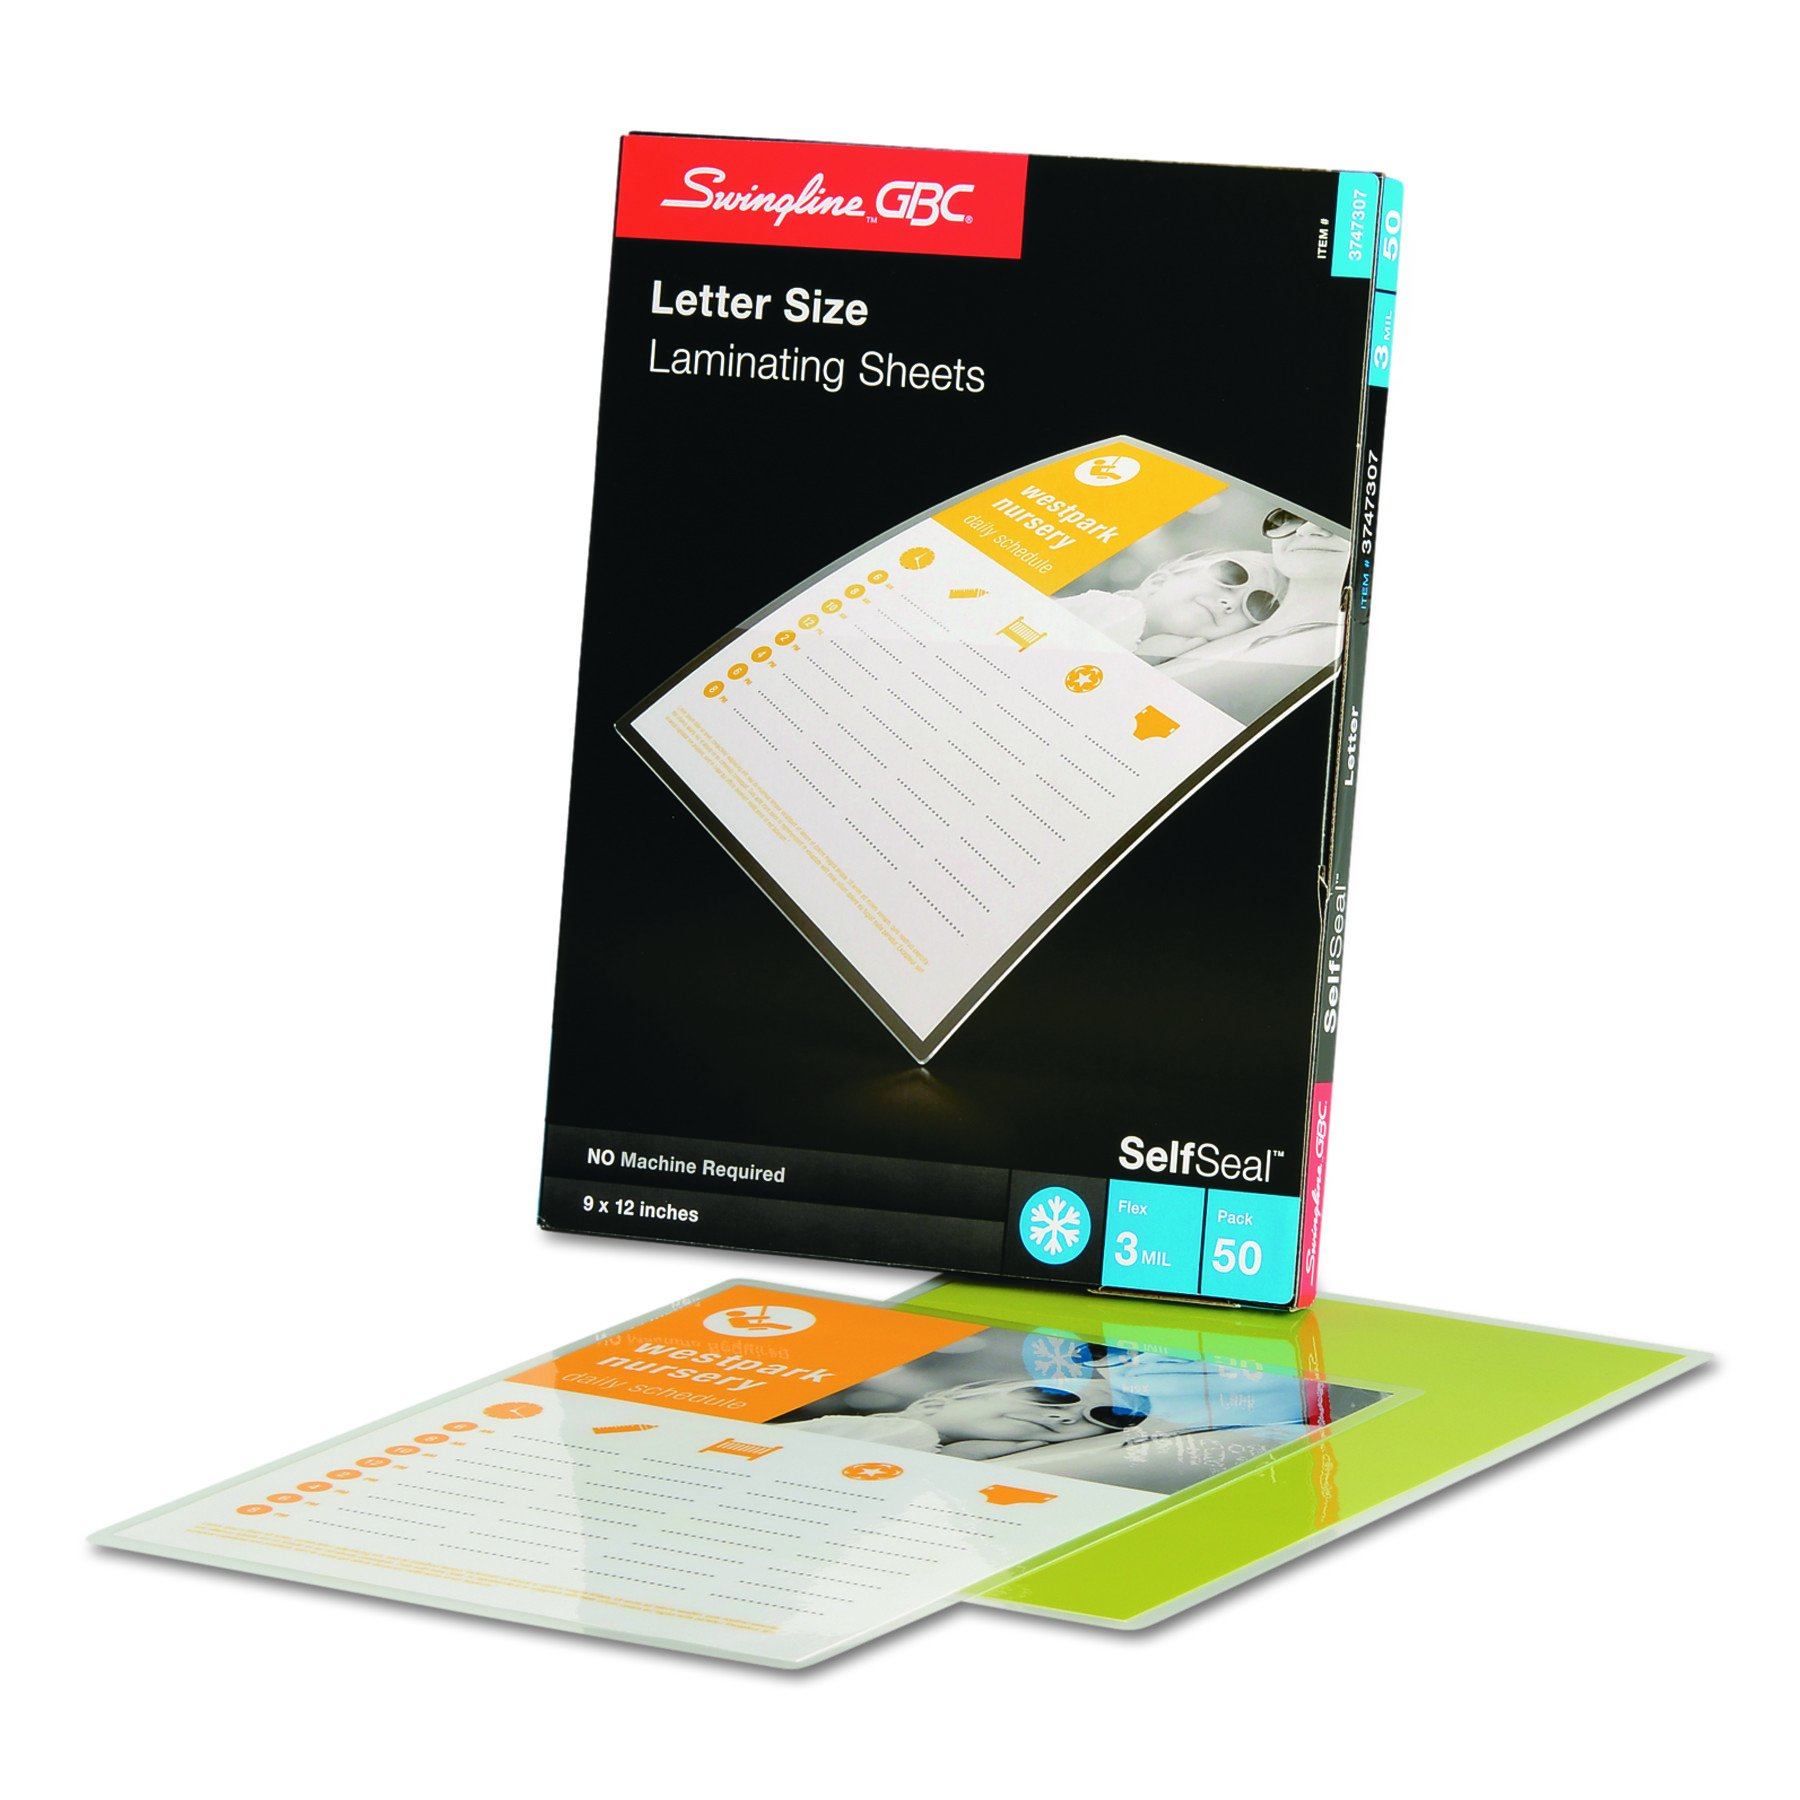 Swingline GBC Laminating Sheets, Self Adhesive Pouches, Self Adhesive, Letter Size, Glossy, 3 Mil, SelfSeal, 50 Pack (3747307)